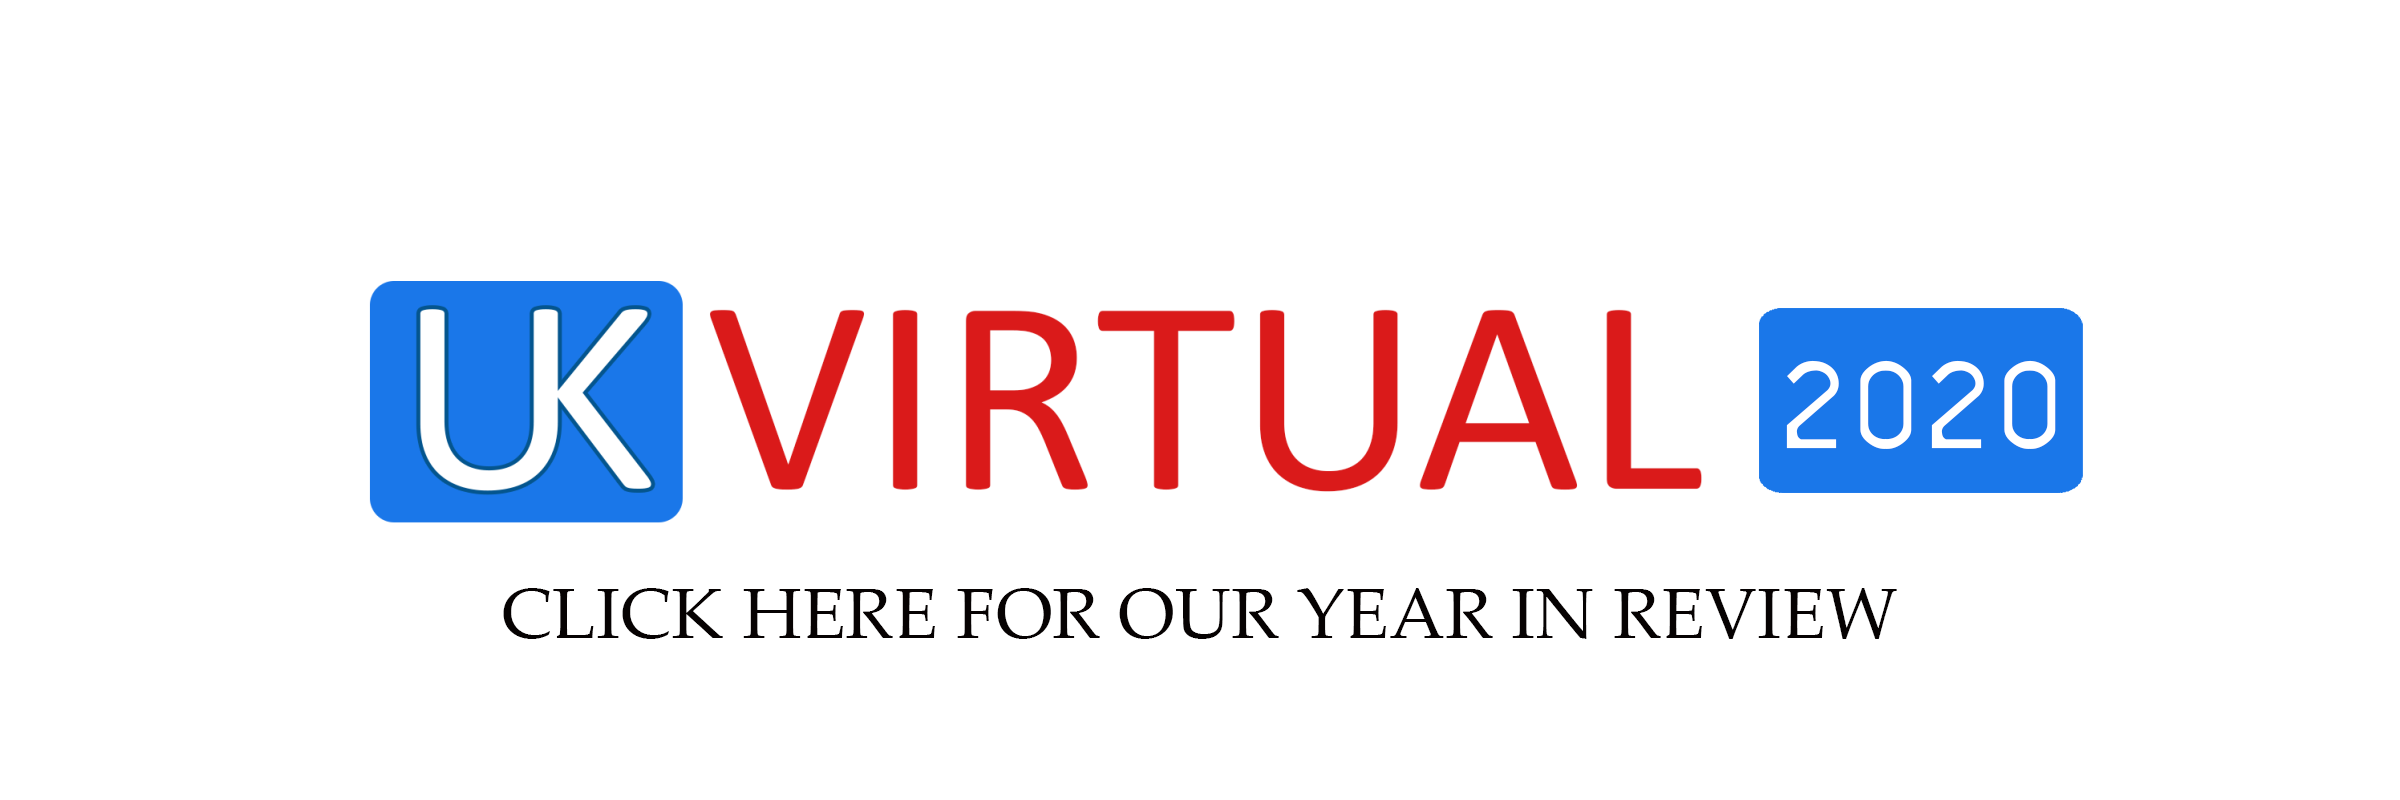 UK virtual 2020 – A year in review